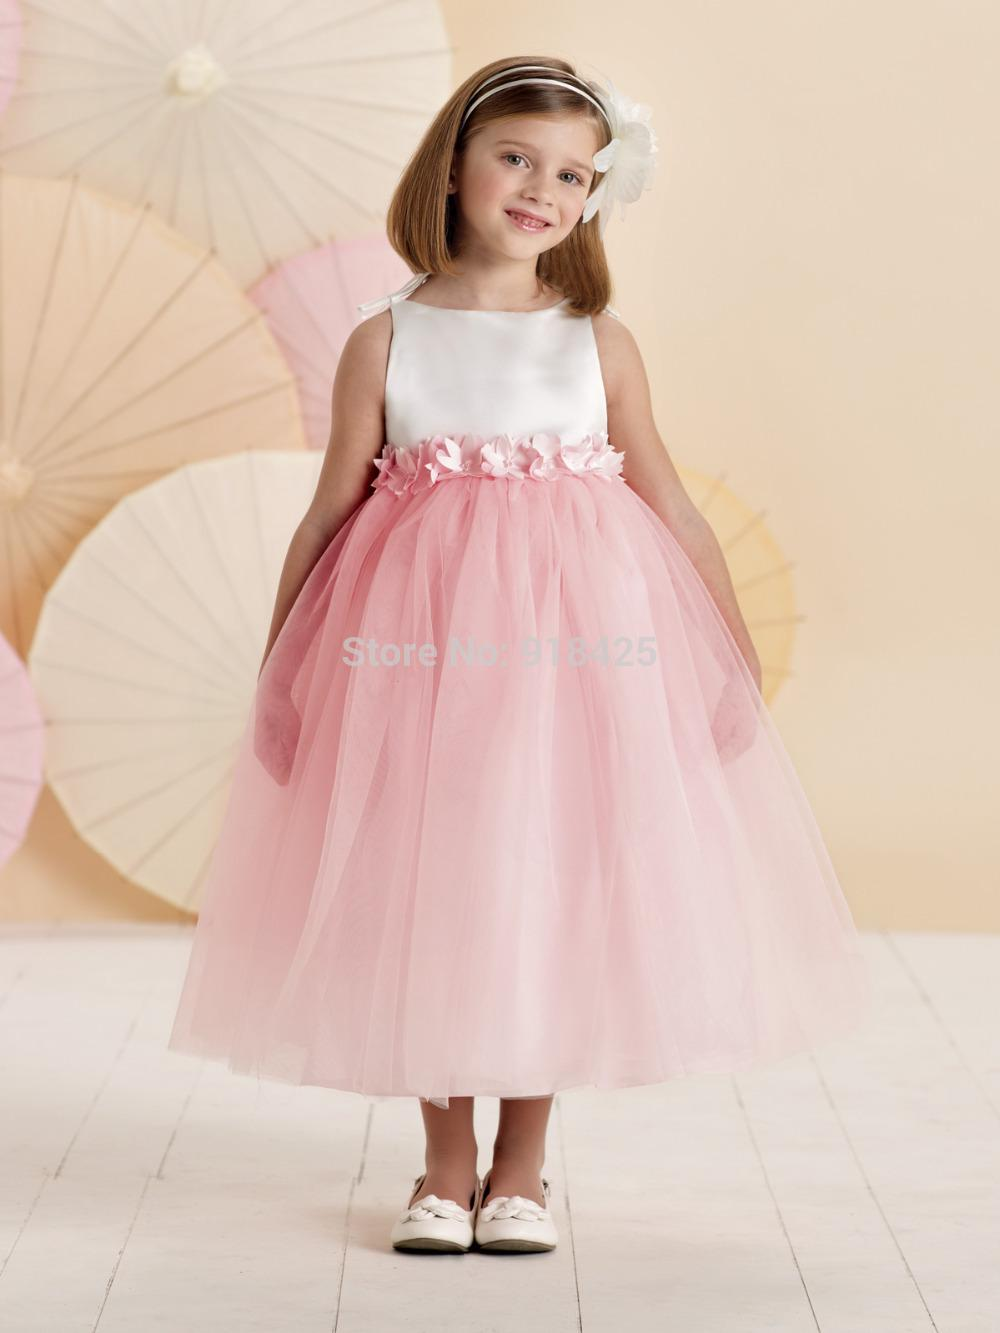 Puffy Pink And White Flower Girl Dresses Party Gown For Little ...